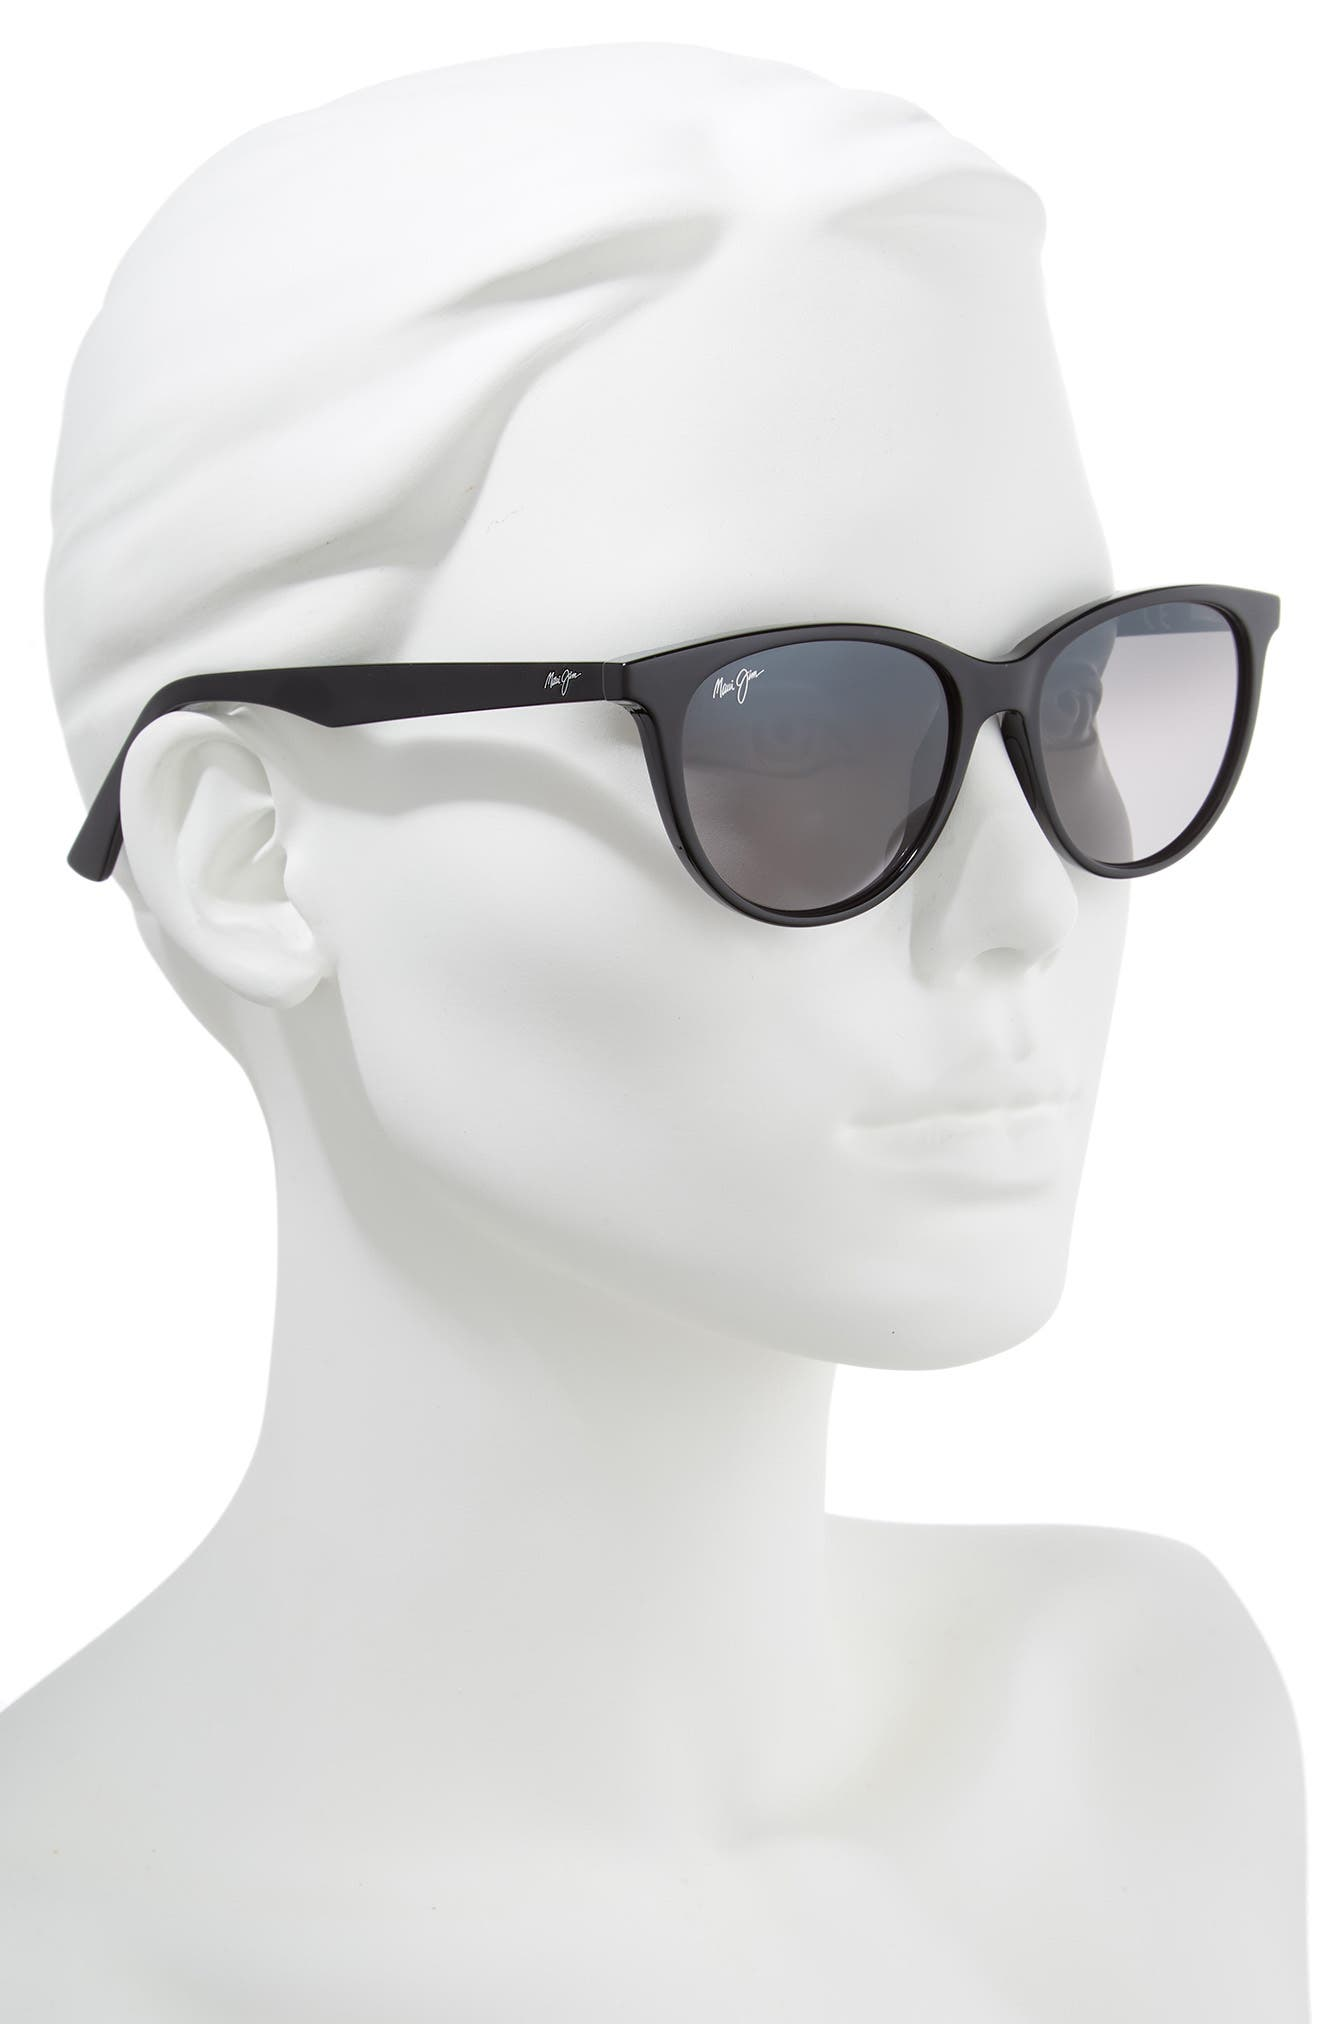 Cathedrals 52mm PolarizedPlus2<sup>®</sup> Cat Eye Sunglasses,                             Alternate thumbnail 2, color,                             BLACK GLOSS/ NEUTRAL GREY